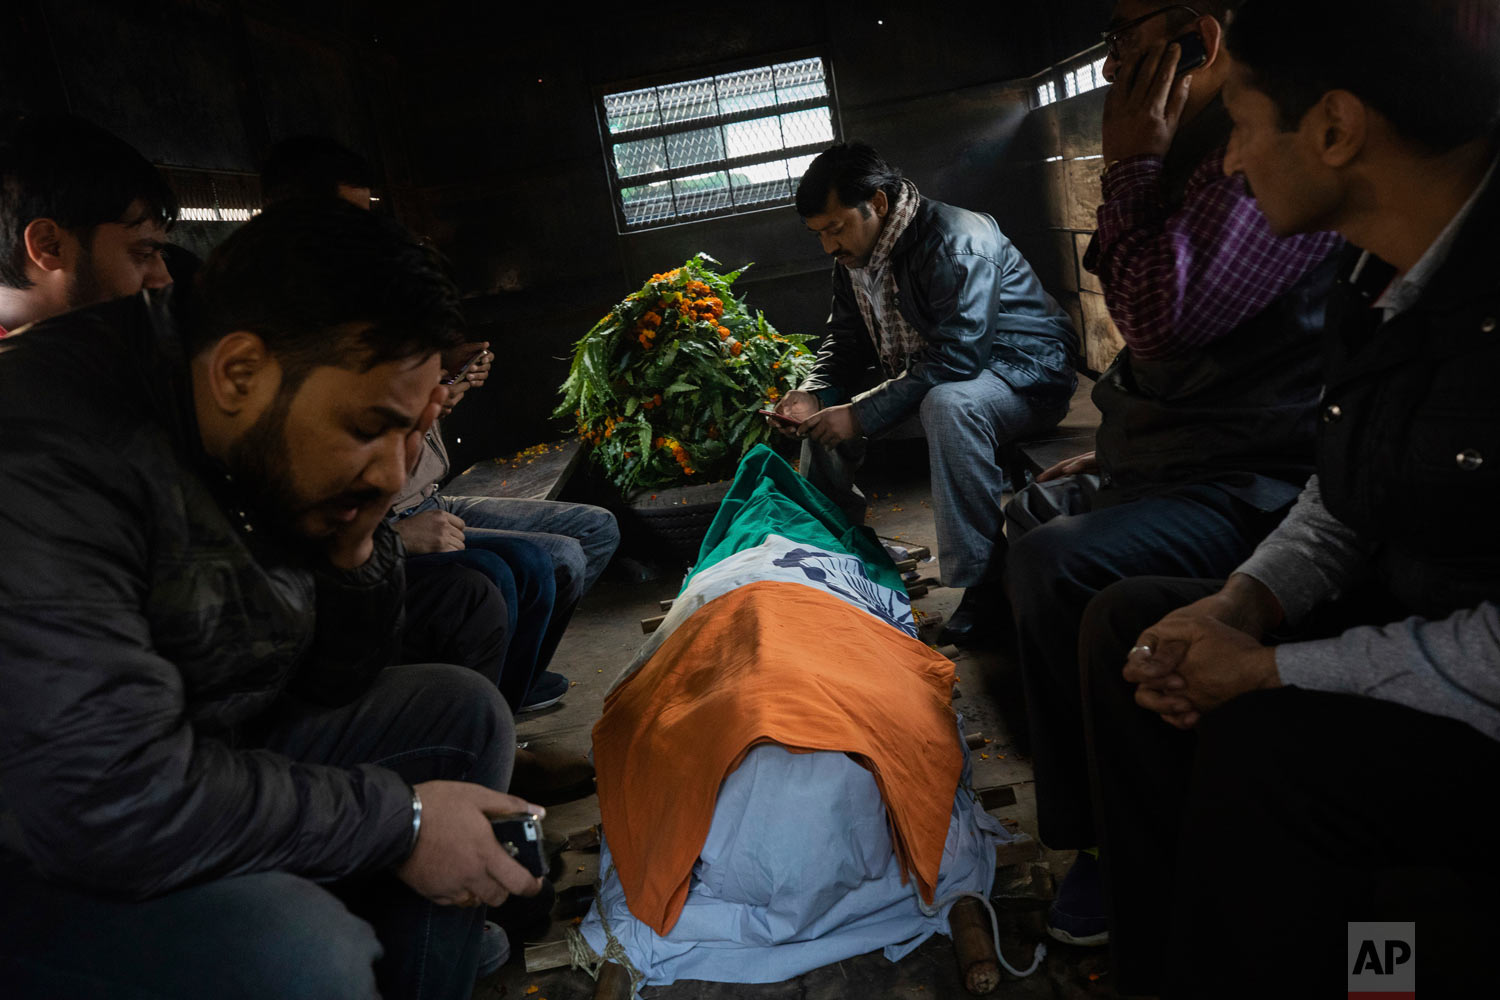 Relatives cry next to the body of police Inspector Subodh Kumar Singh in Chingarwathi, near Bulandshahr, in the northern Indian state of Uttar Pradesh, Dec. 4, 2018. The previous day, Singh and another person were killed in the mob violence that began with accusations of cow slaughter in the area. (AP Photo/Bernat Armangue)